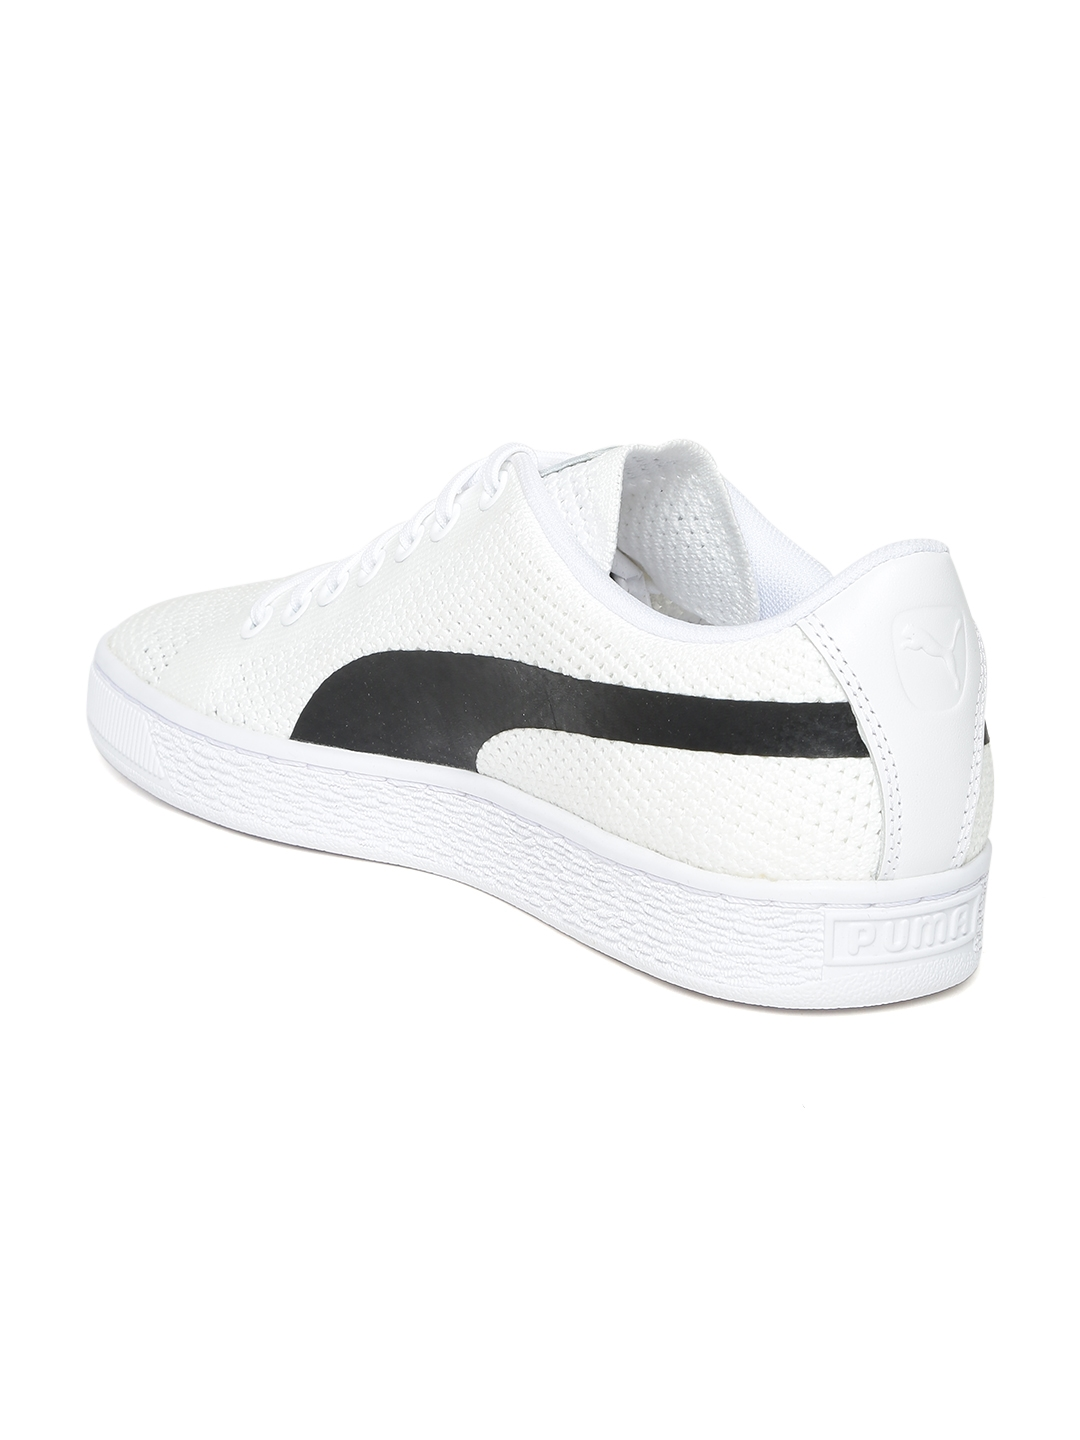 ddd91524adc Buy Puma Unisex White Basket Classic EvoKNIT Sneakers - Casual Shoes ...